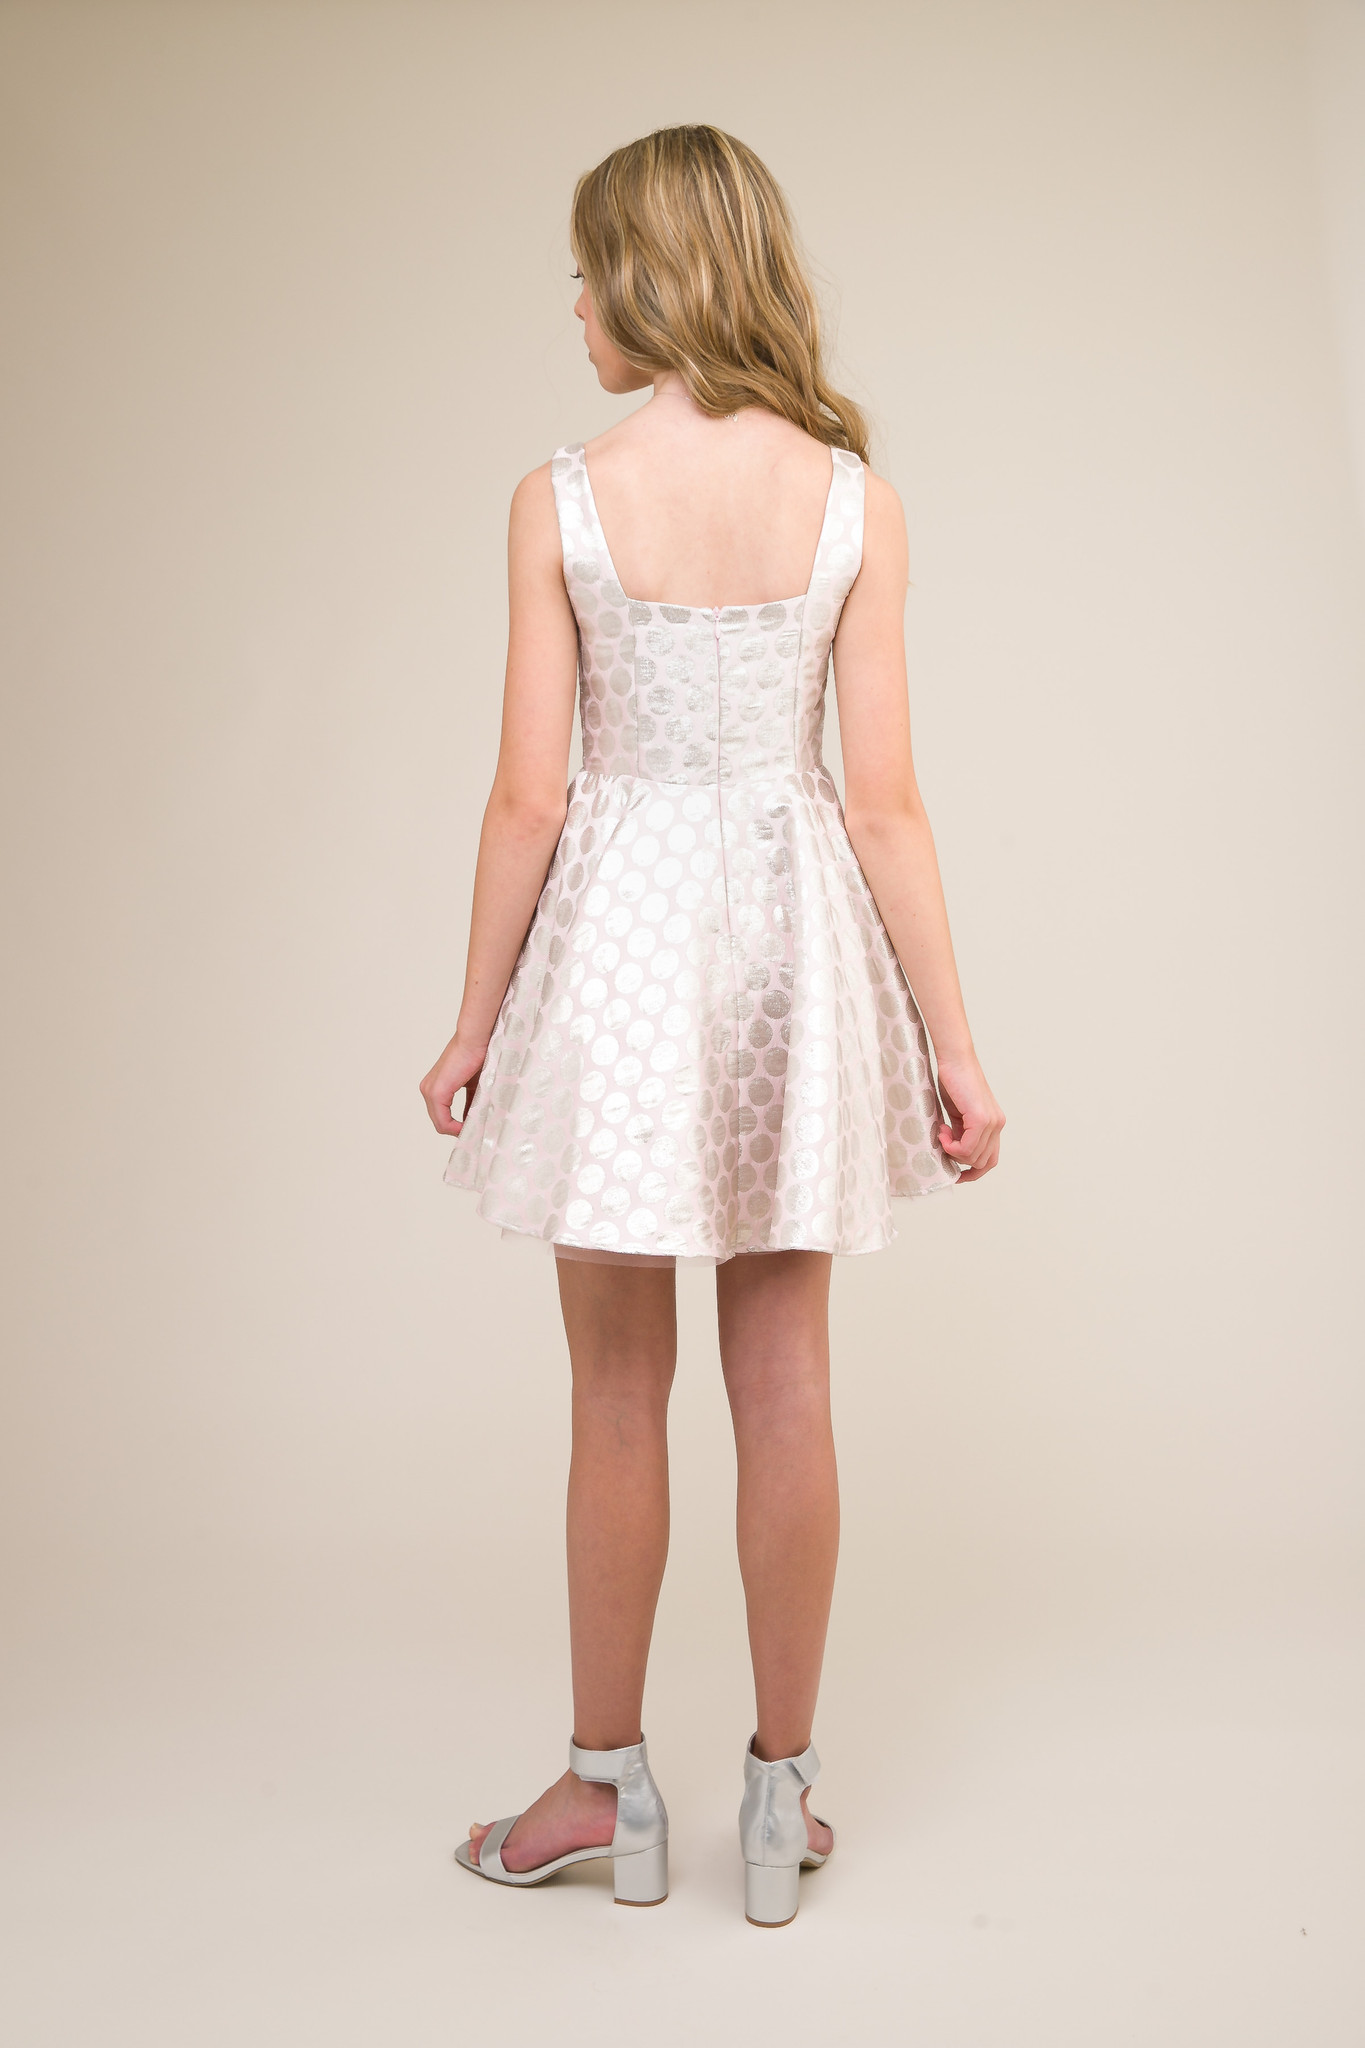 Square Neck Polka Dot Party Dress with Matching Mask.